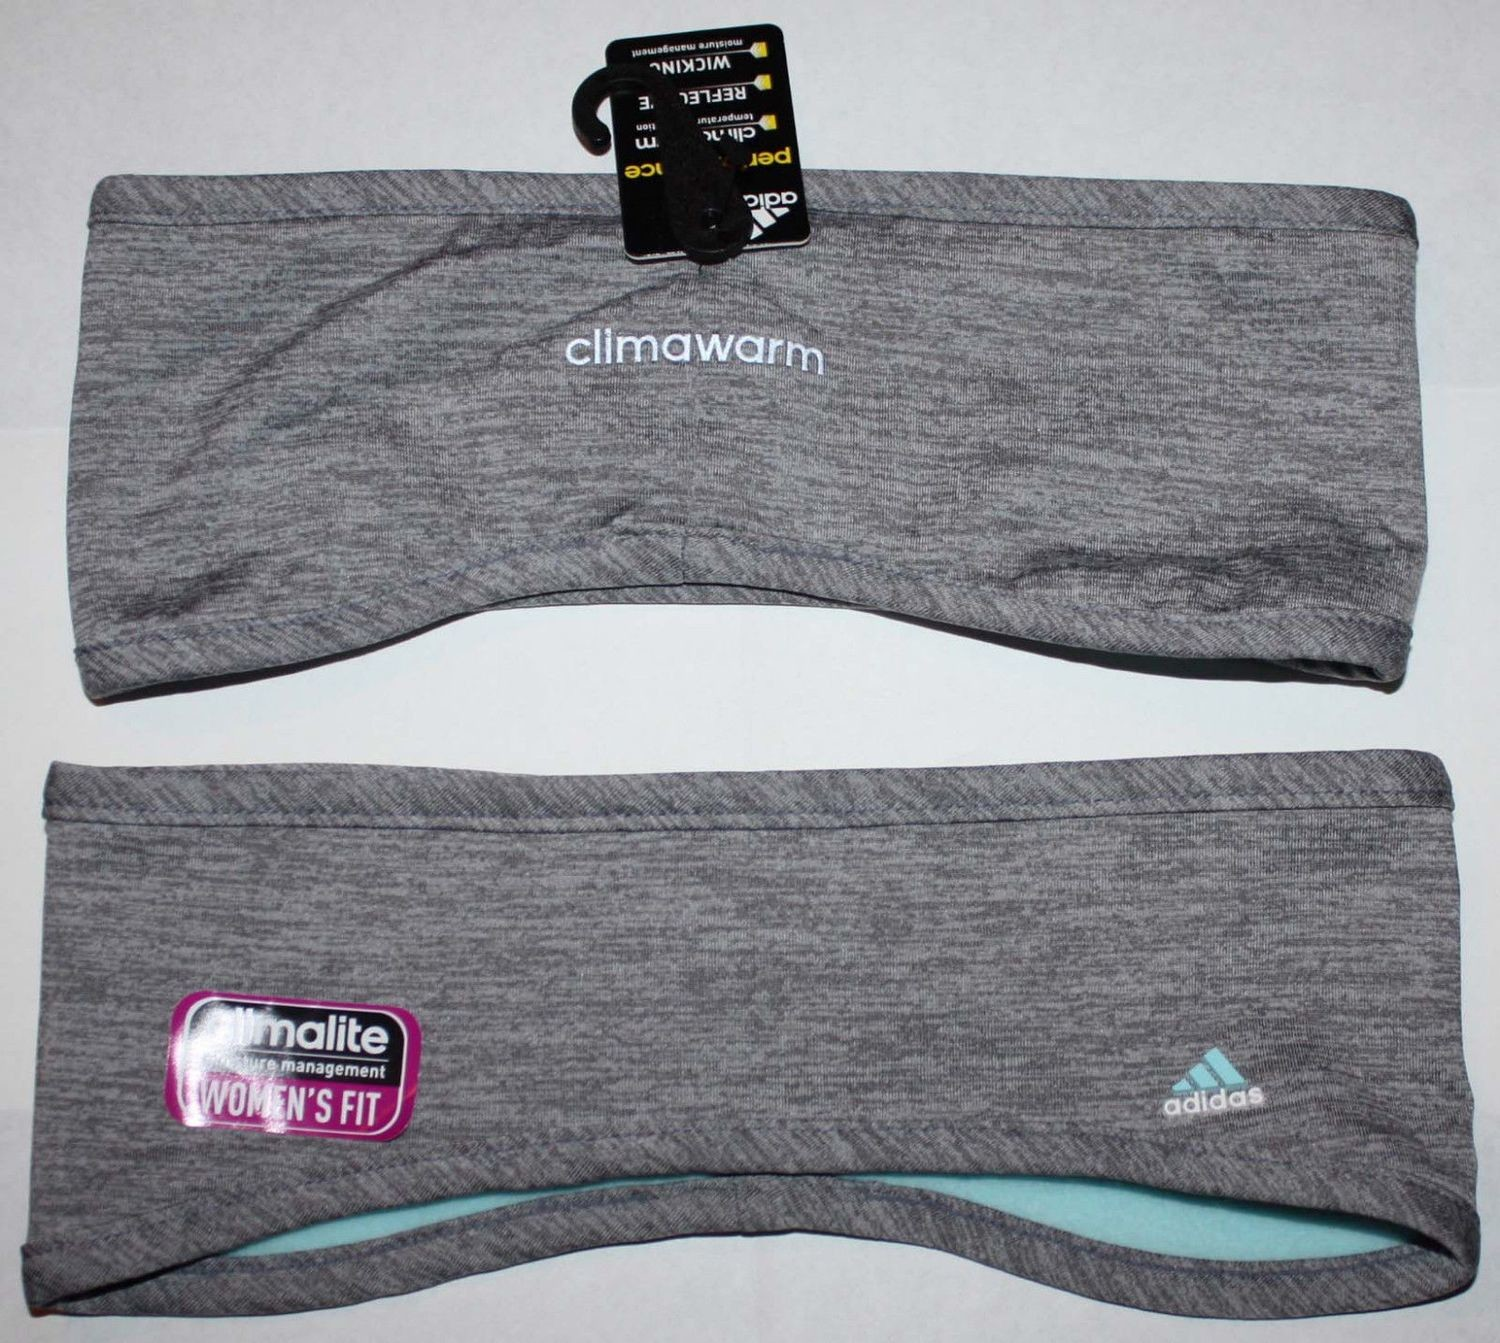 Adidas POWDER Women's Climawarm Gray Blur/Blue Fleece Lined Headband (One Size)